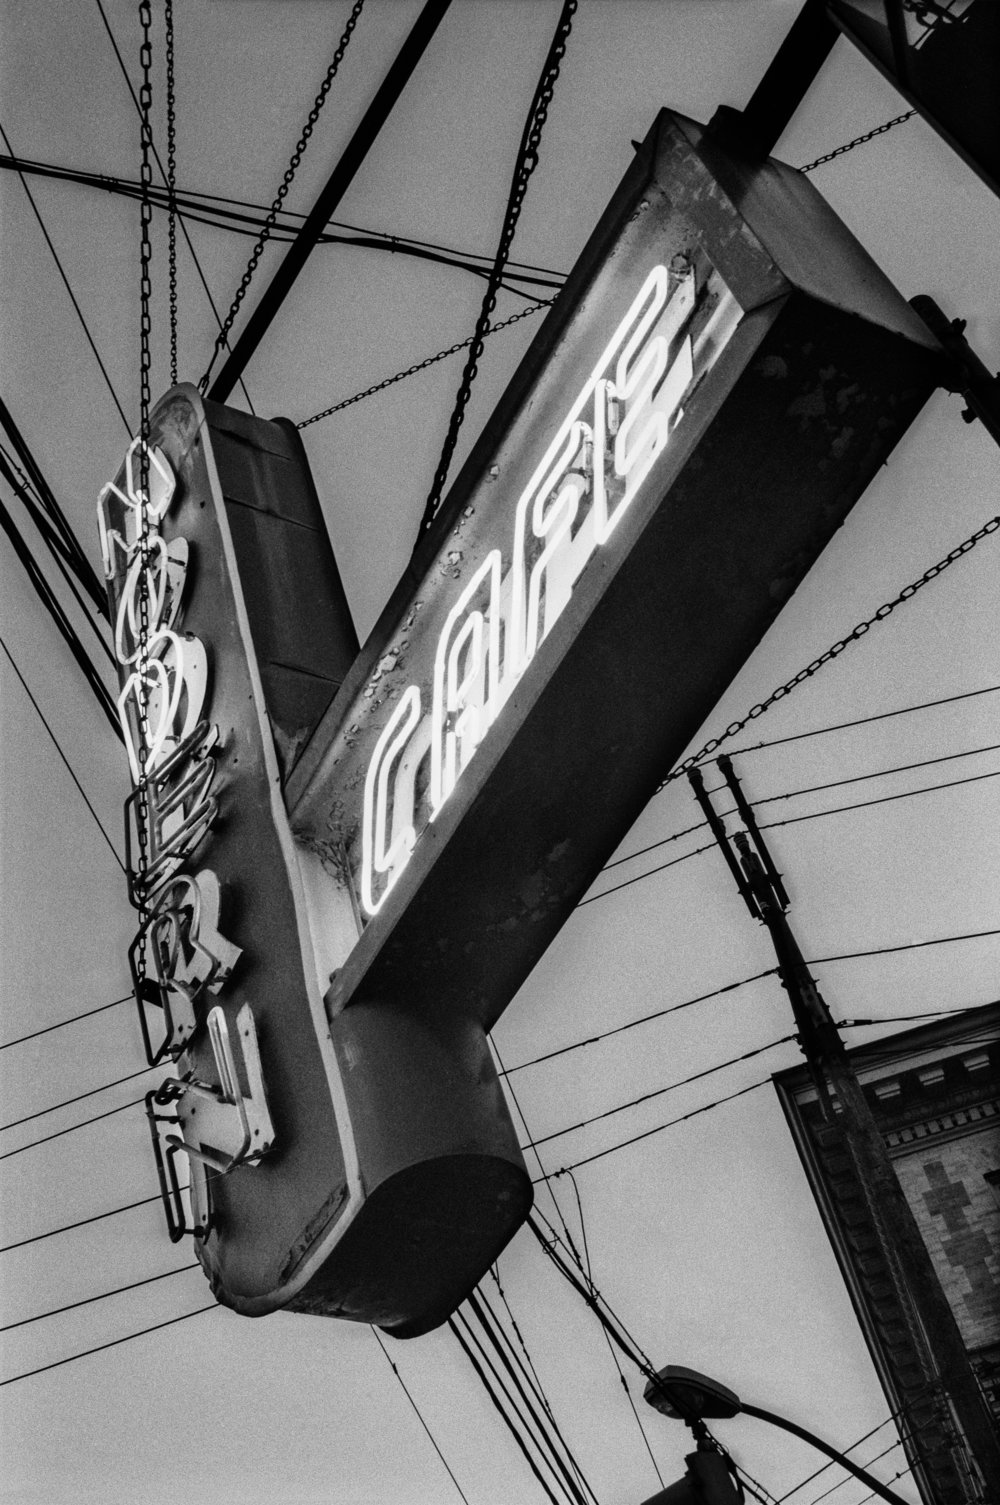 "Lot 64 Chuck Biddle, Pittsburgh, PA    Modern Cafe , Archival inkjet print, 1991/2017, 16"" x 20"" Signed, recto Donated by the artist Edition 1/5 $400 - 700"